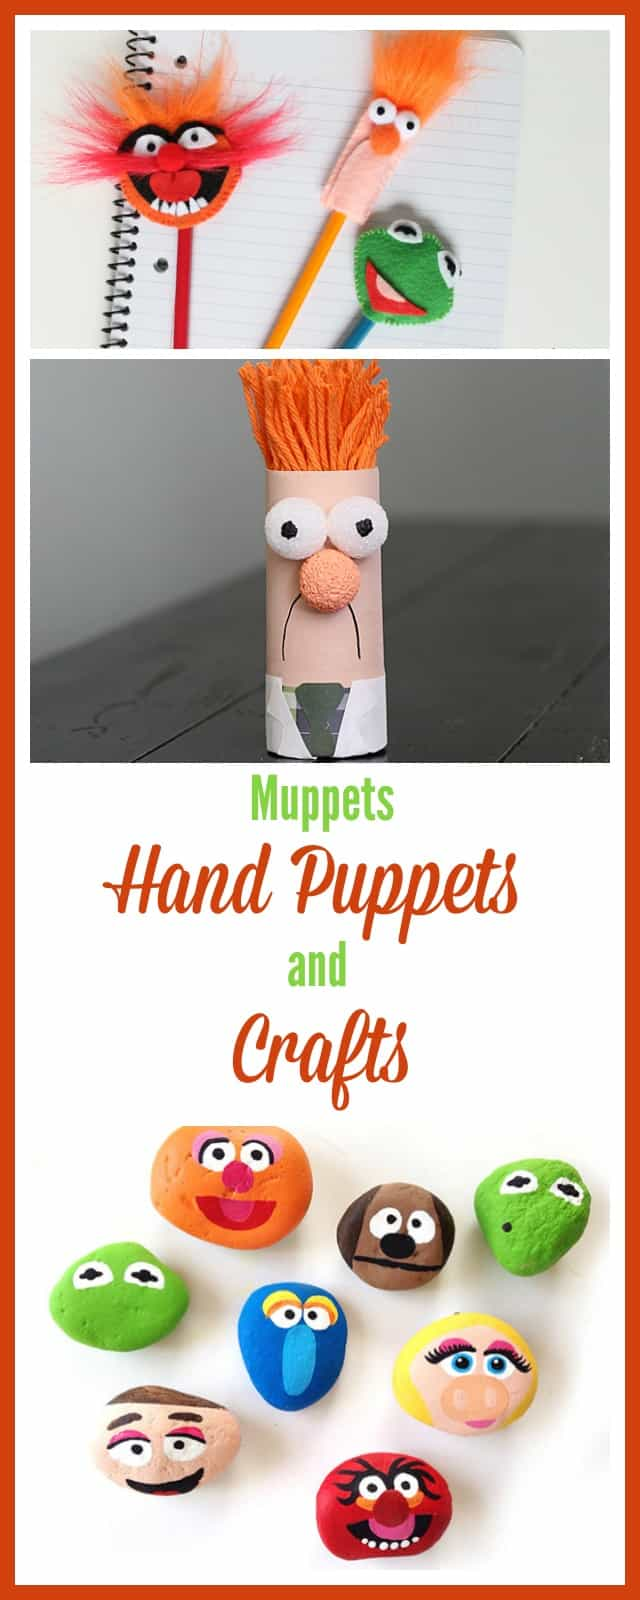 Muppets Hand Puppets and Crafts